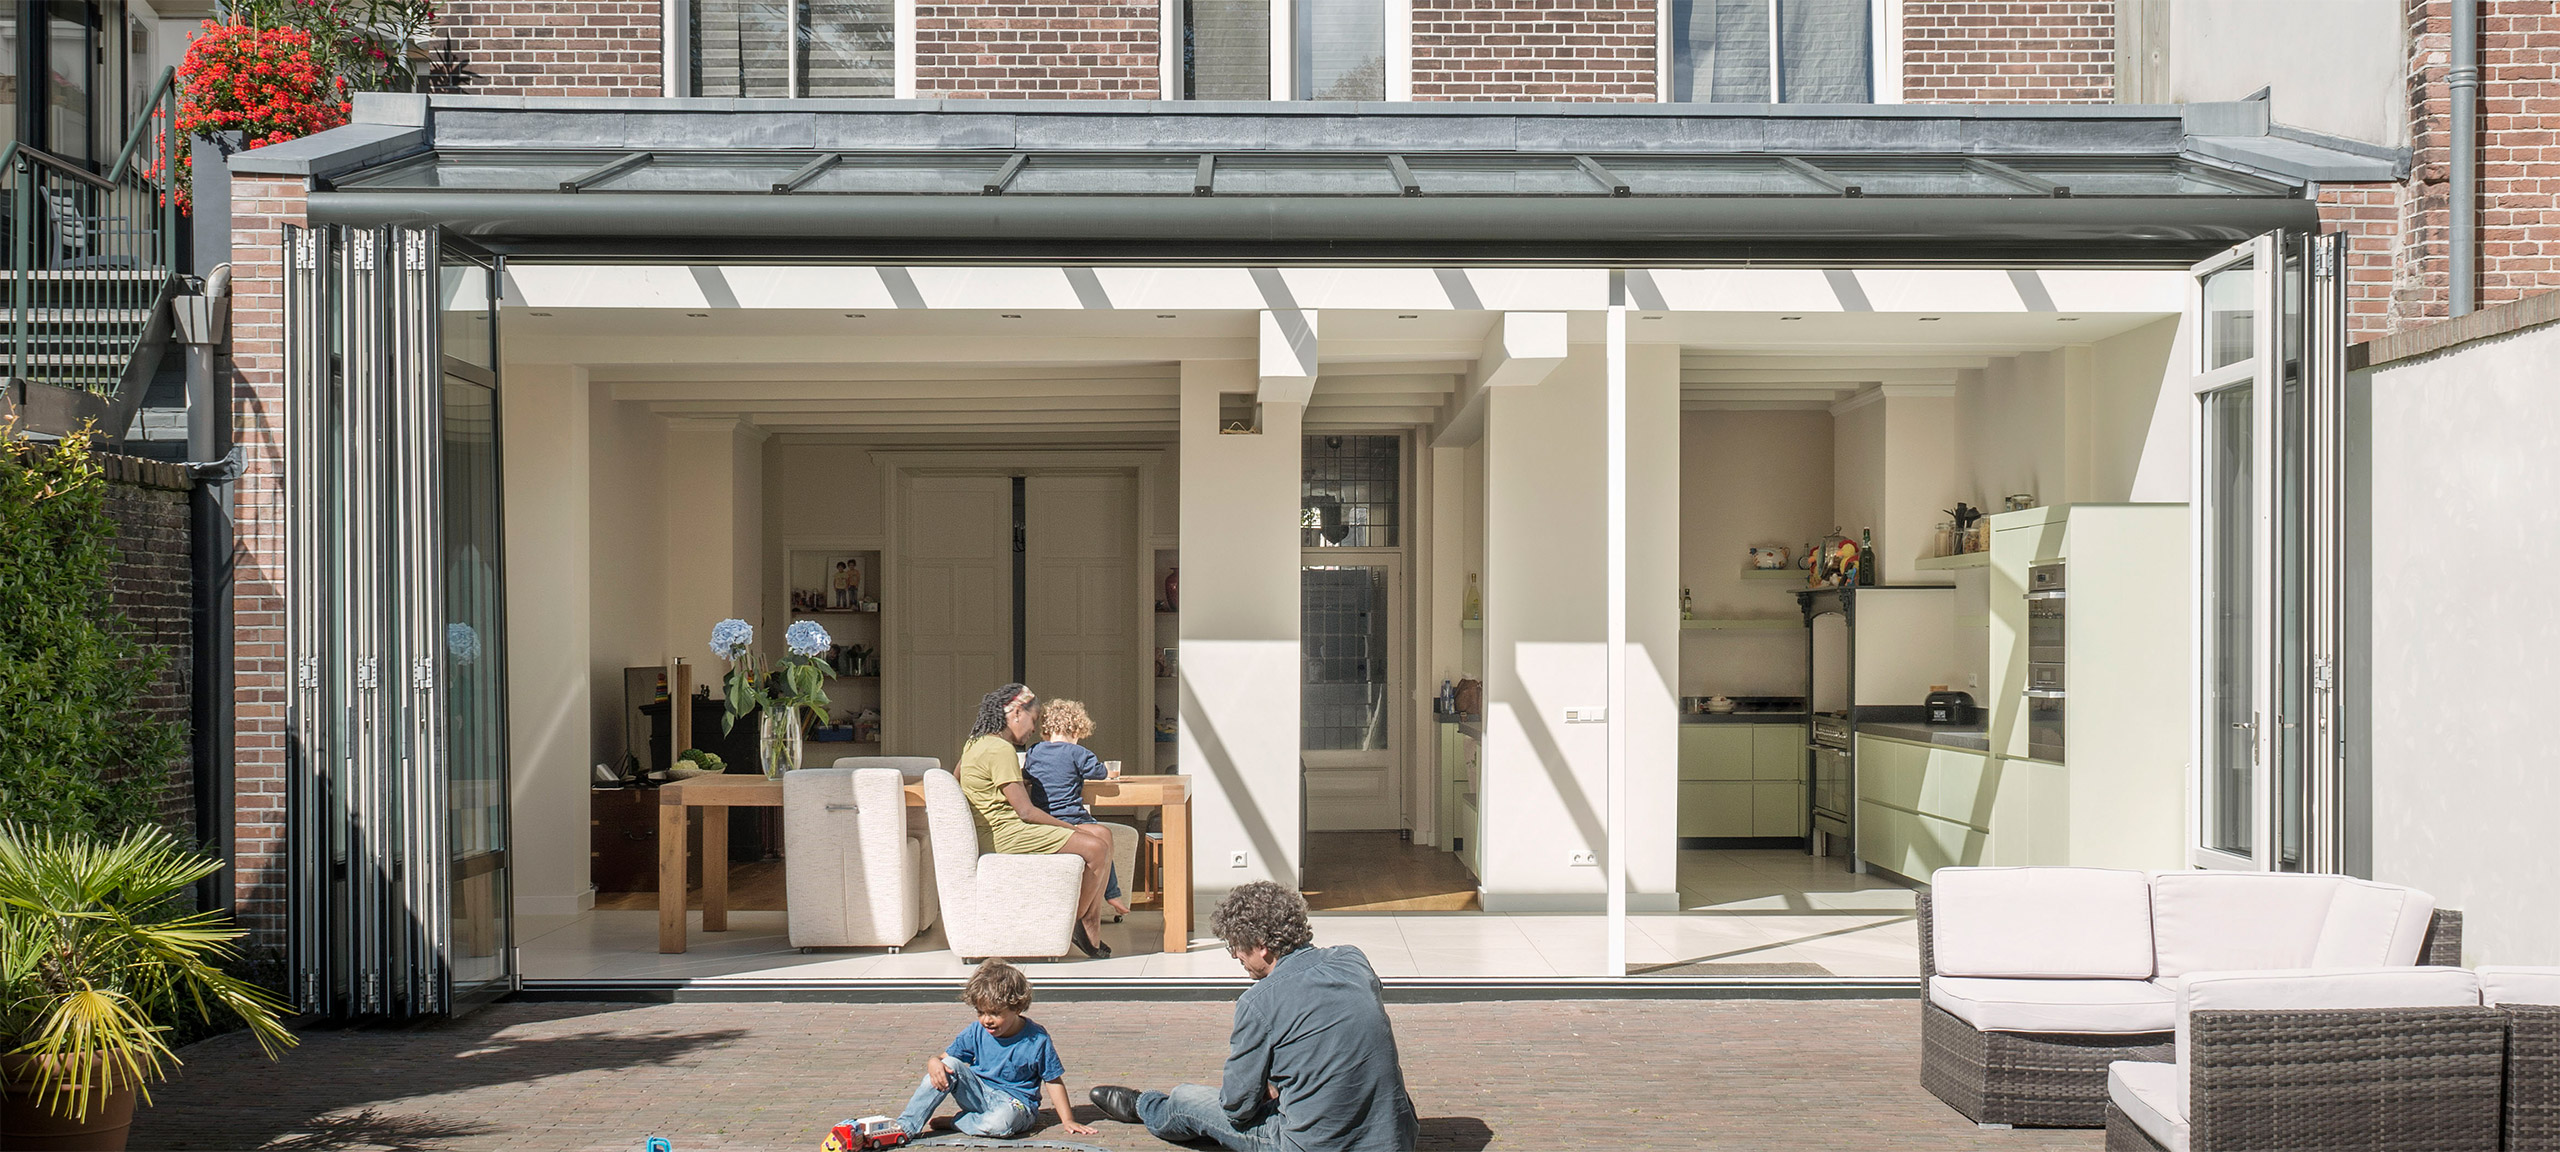 Wintergarden in summer with bifold doors